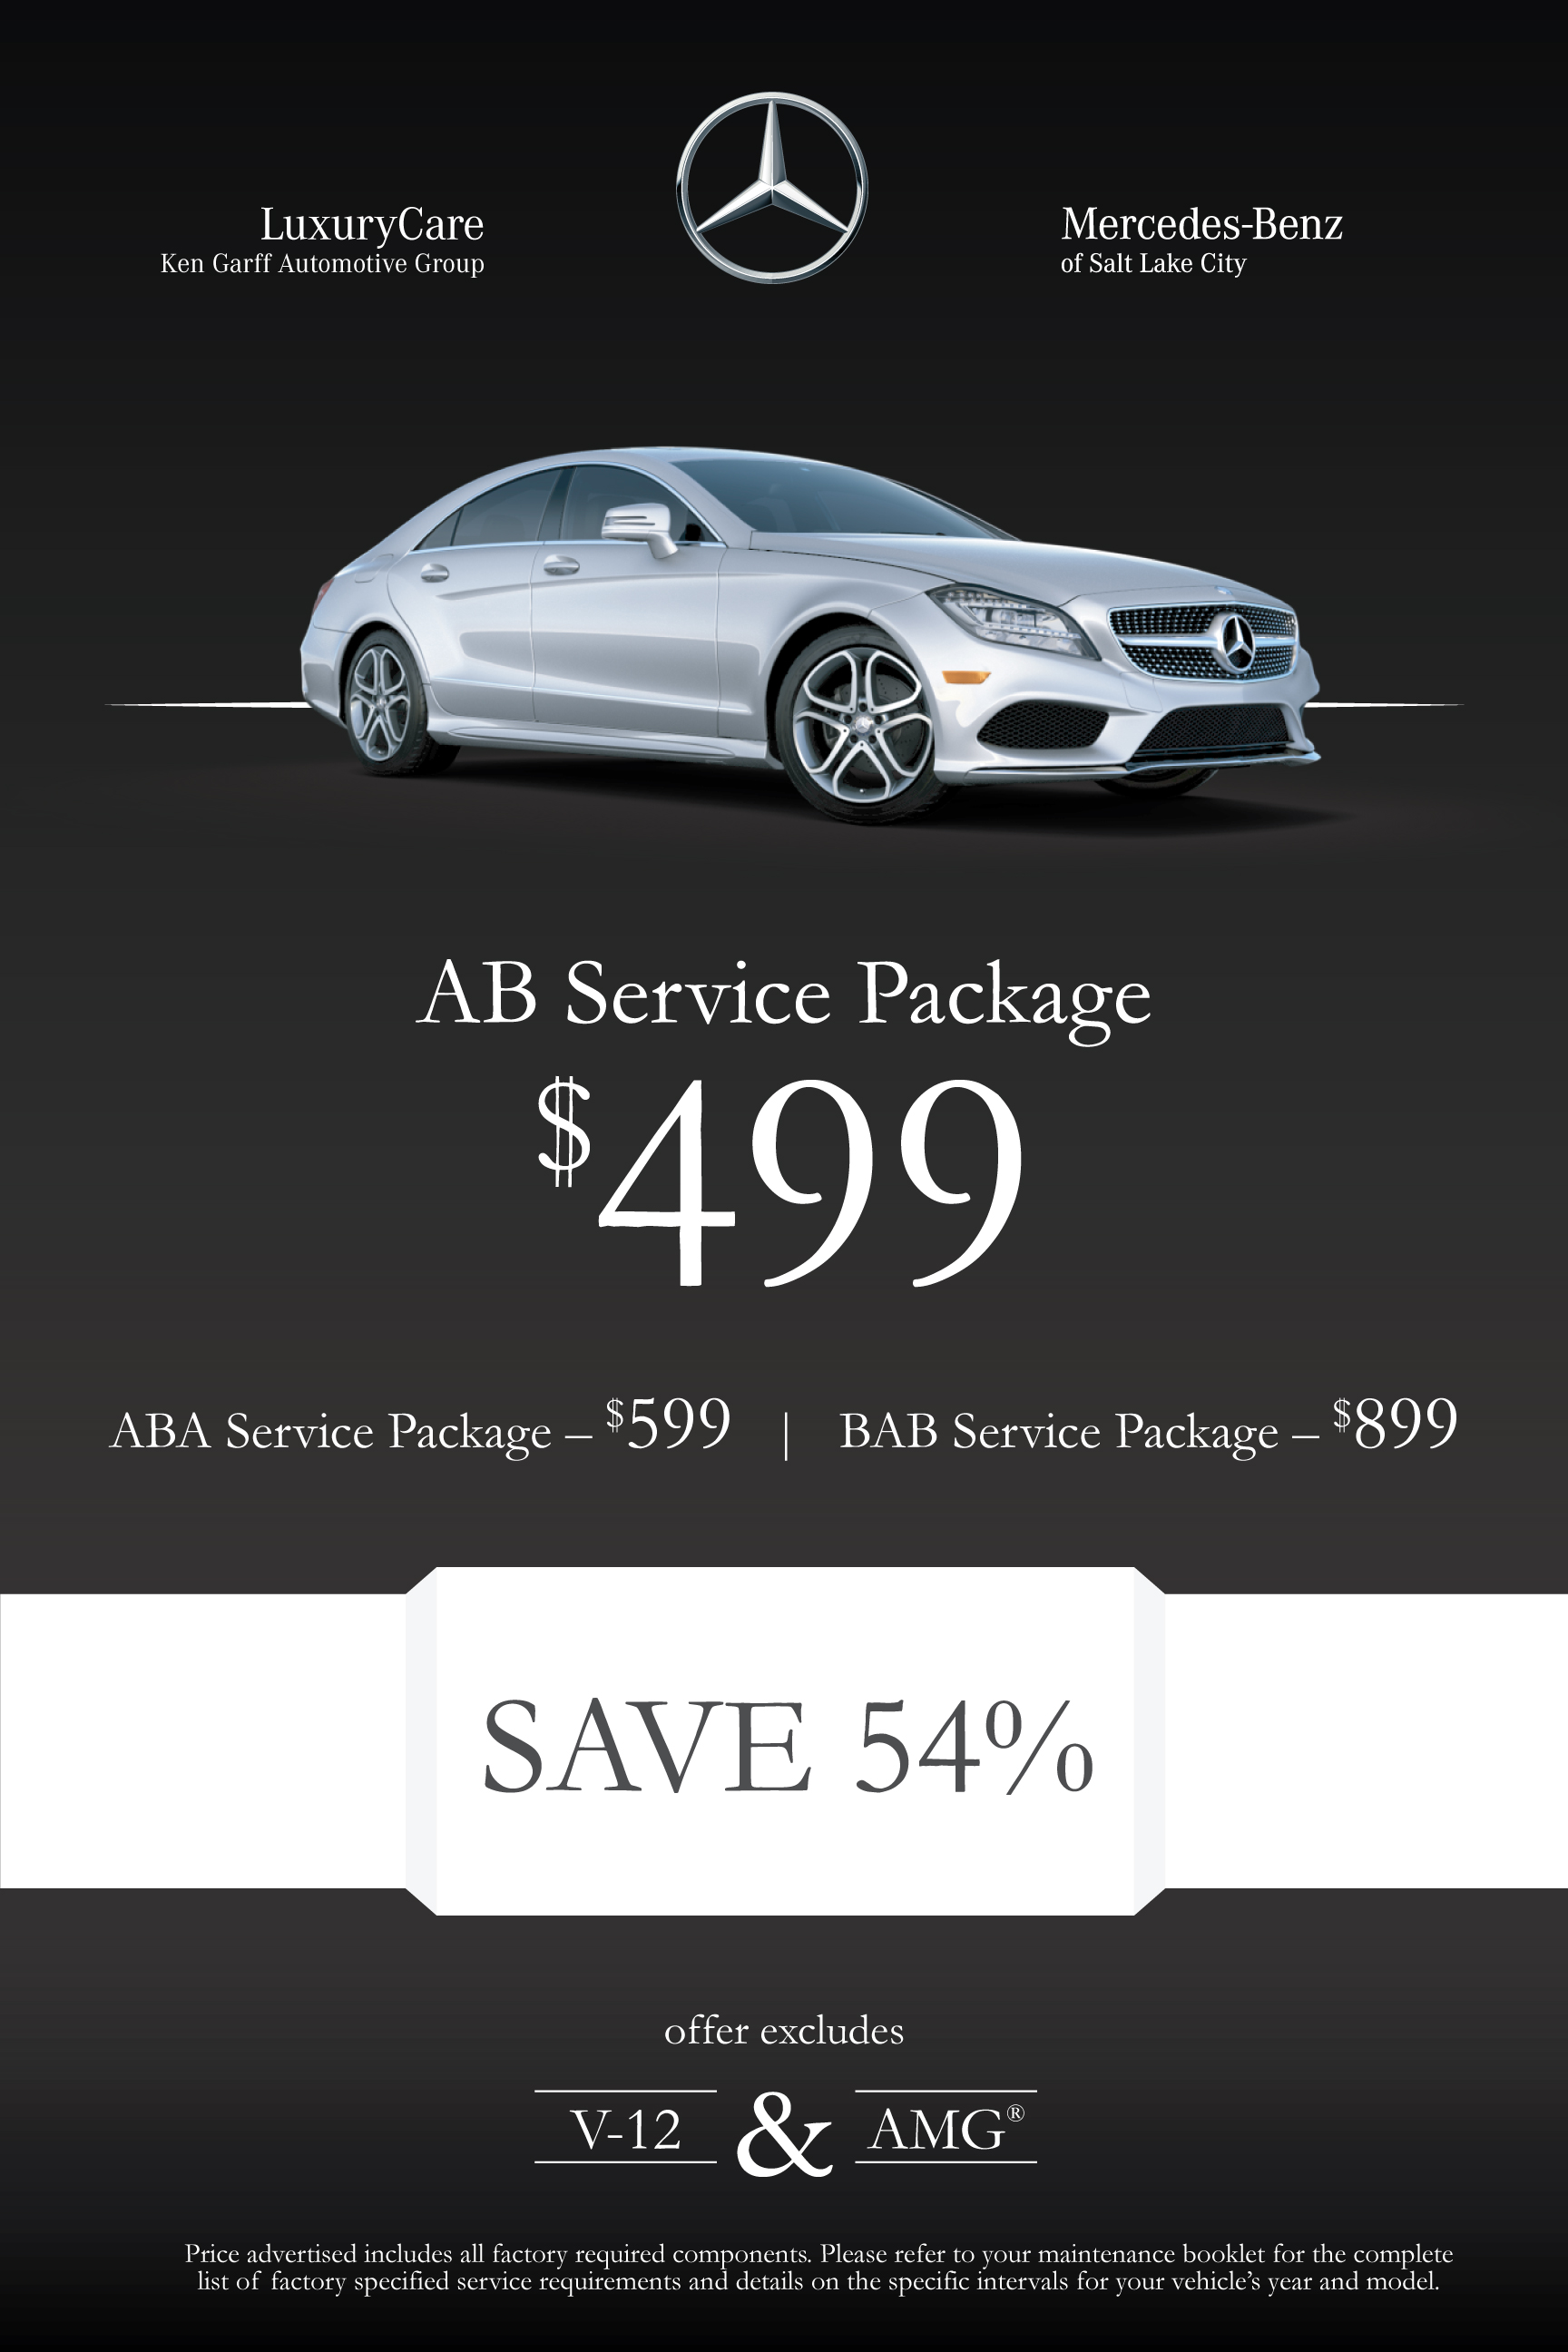 Luxury care prepaid maintenance program mercedes benz for Mercedes benz service discount